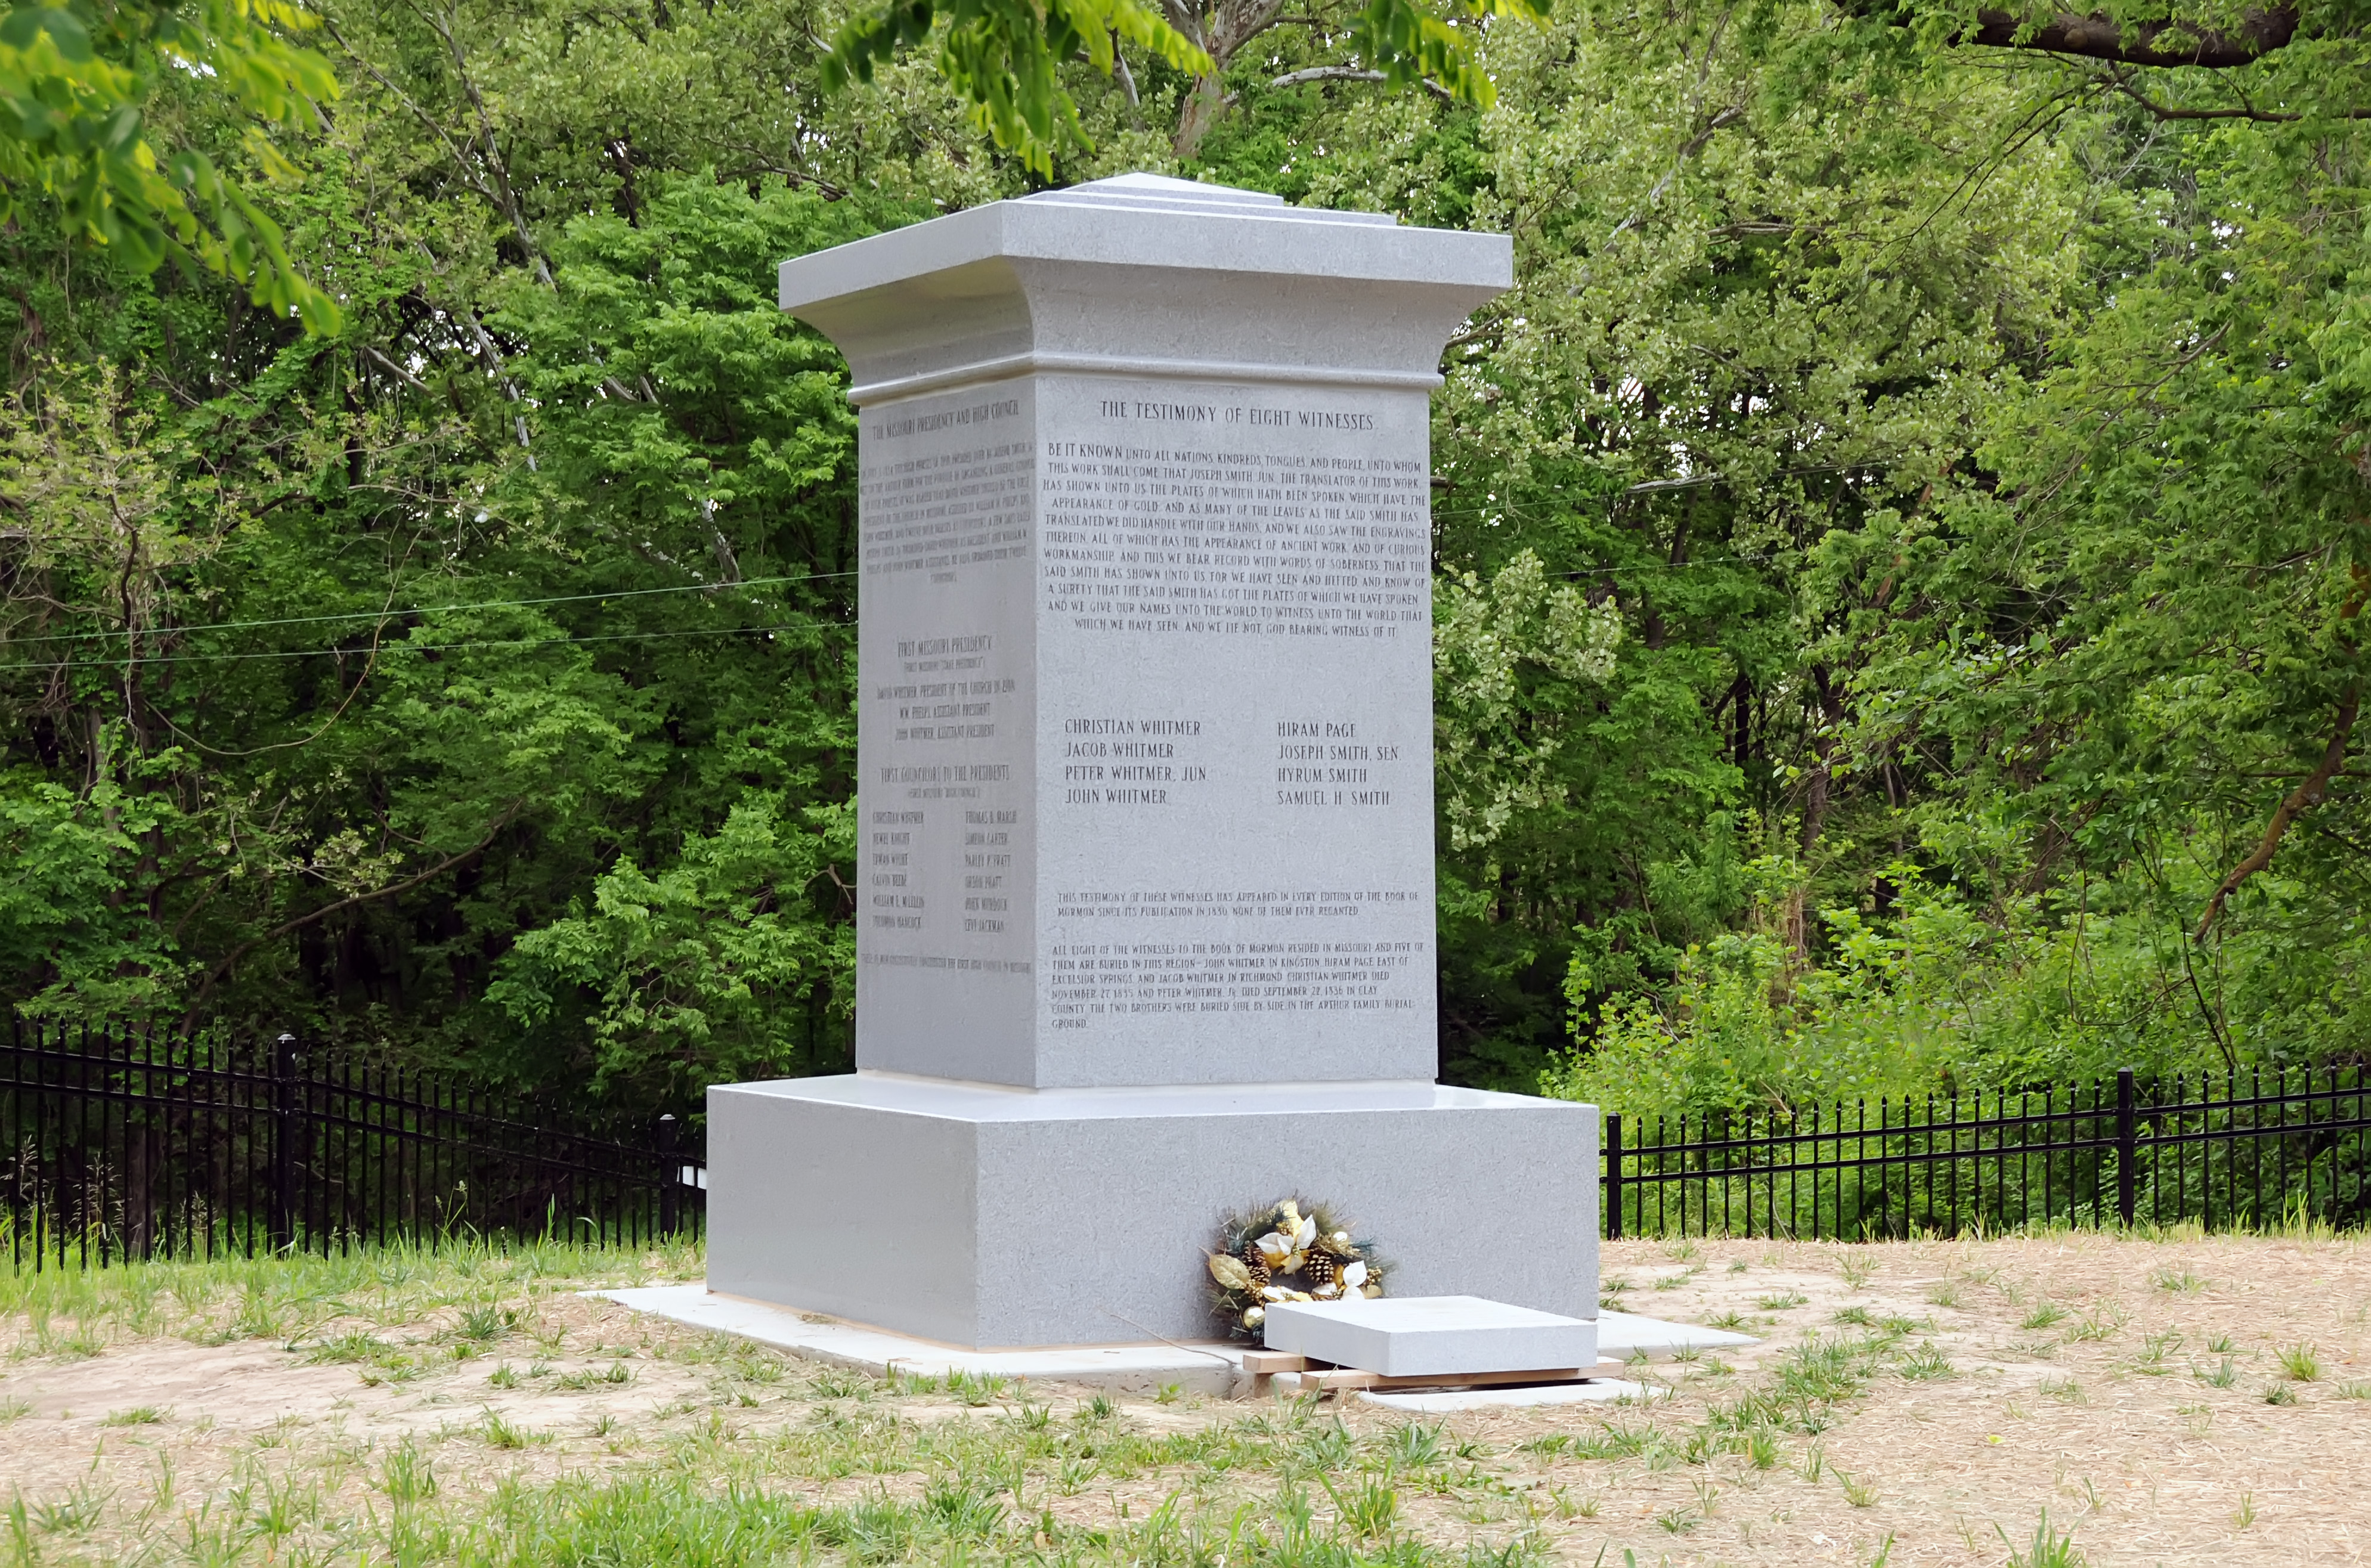 Eight Witnesses Monument